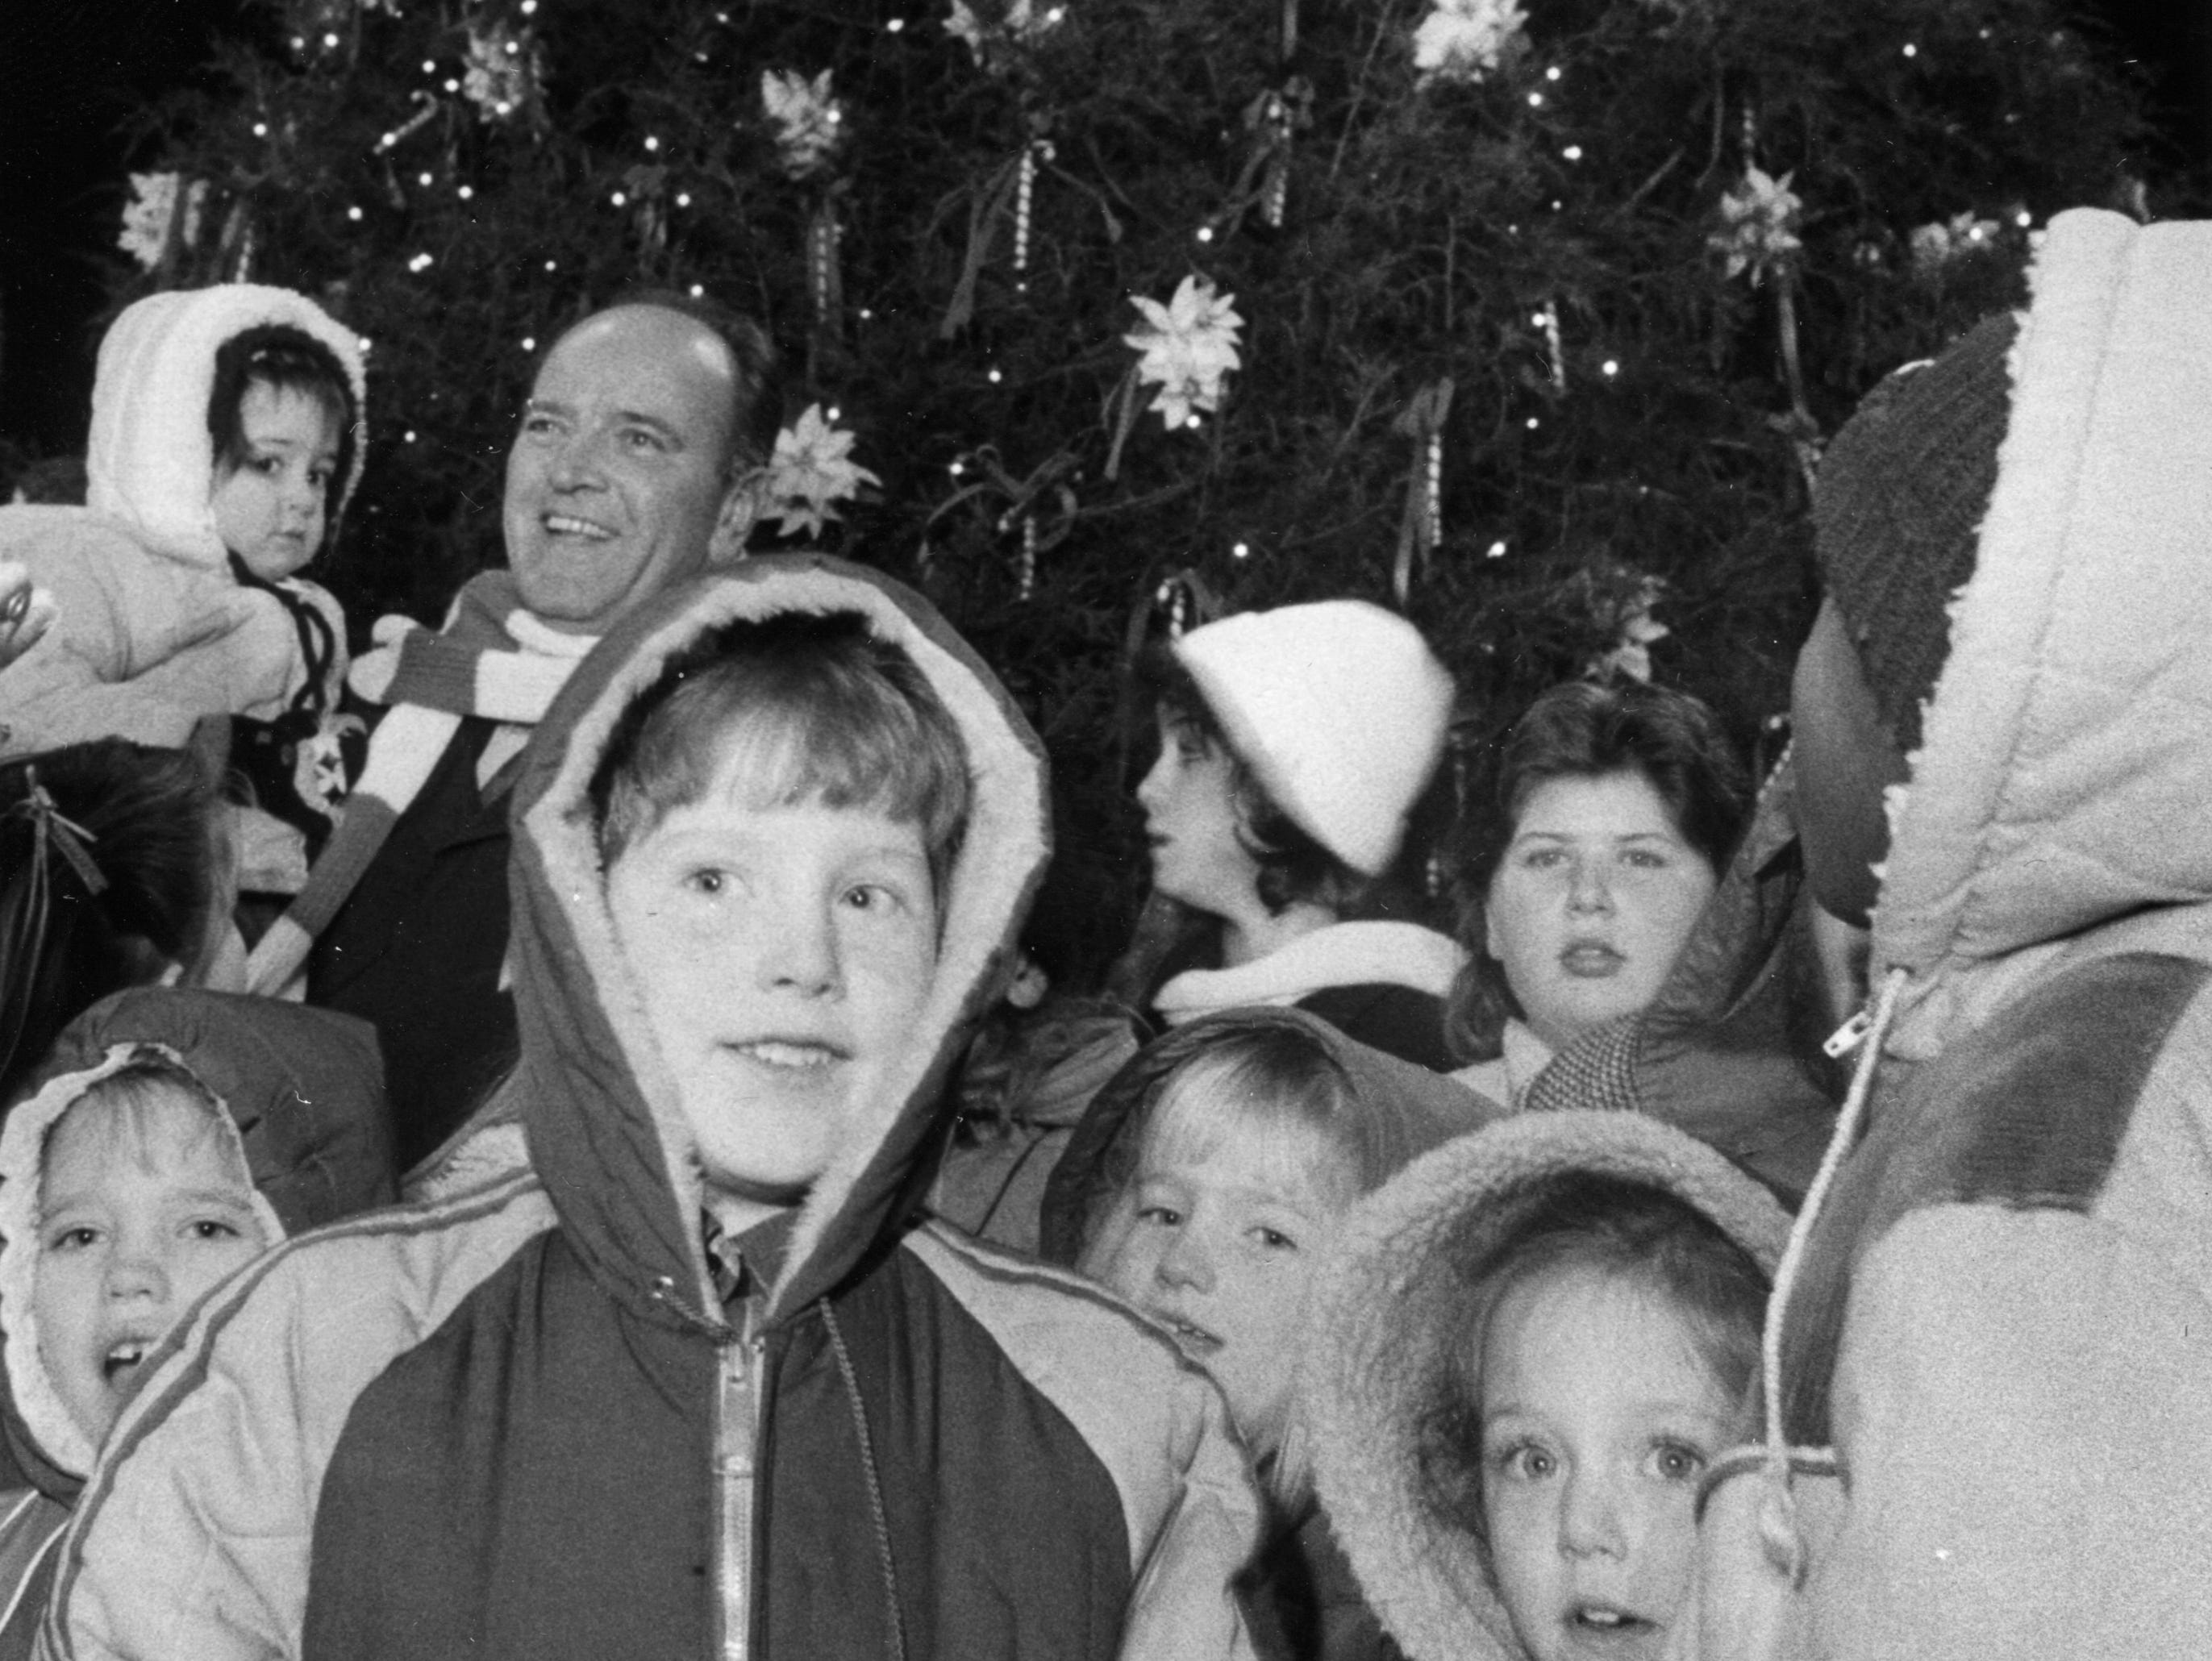 Mayor Kyle Testerman helps celebrate the lighting of the city's Christmas tree on Dec. 7, 1984, at Market Square.